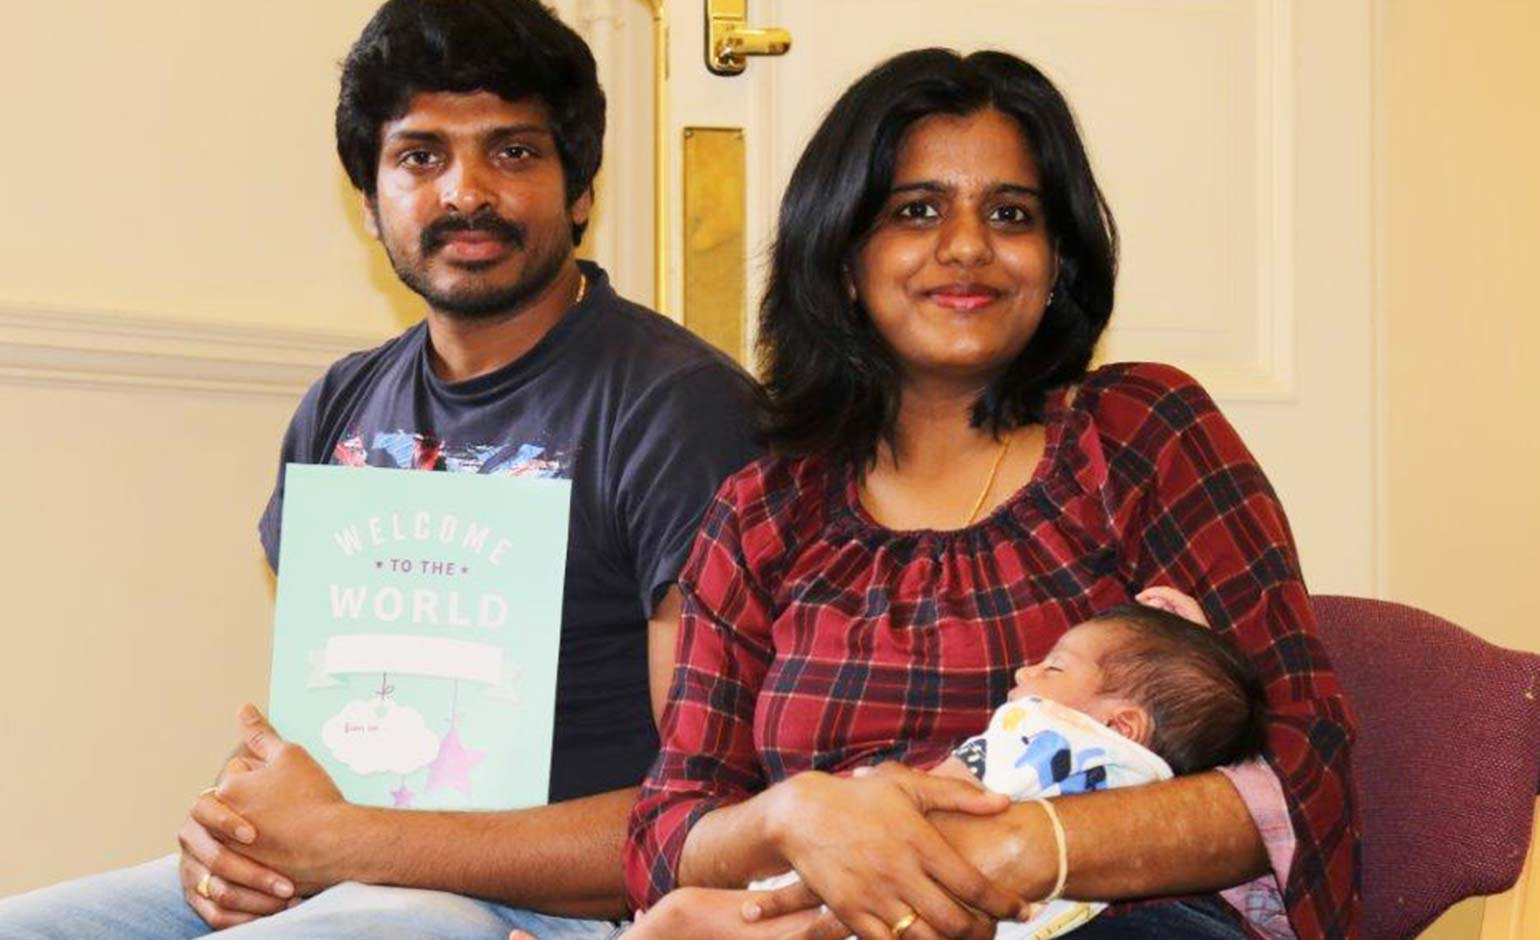 Families invited to register birth of their baby following easing of restrictions